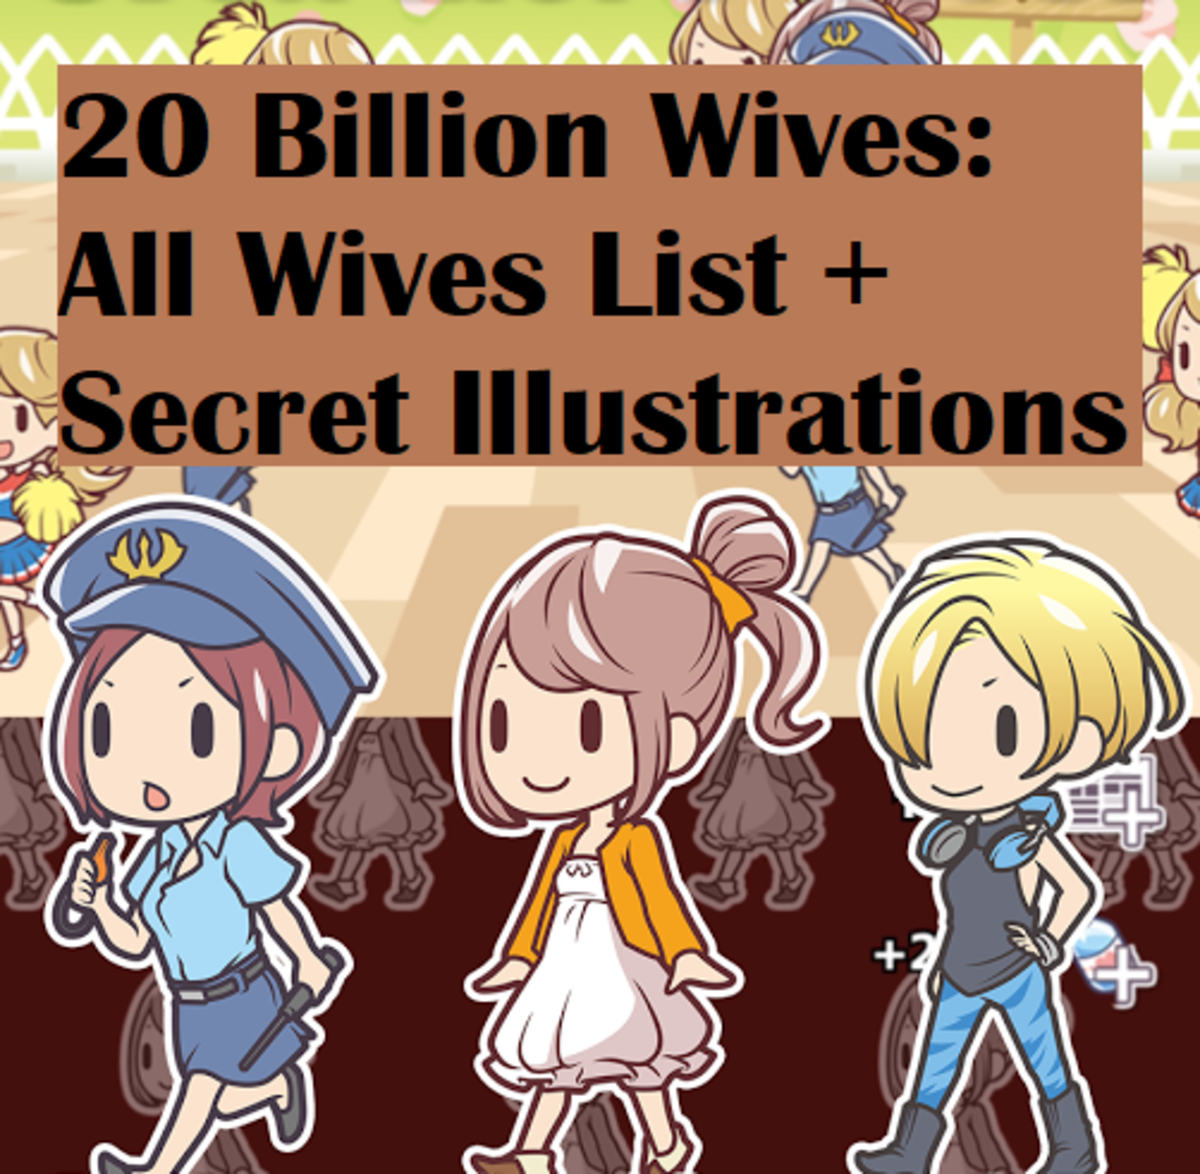 20 Billion Wives: All Wives List + Secret Illustrations